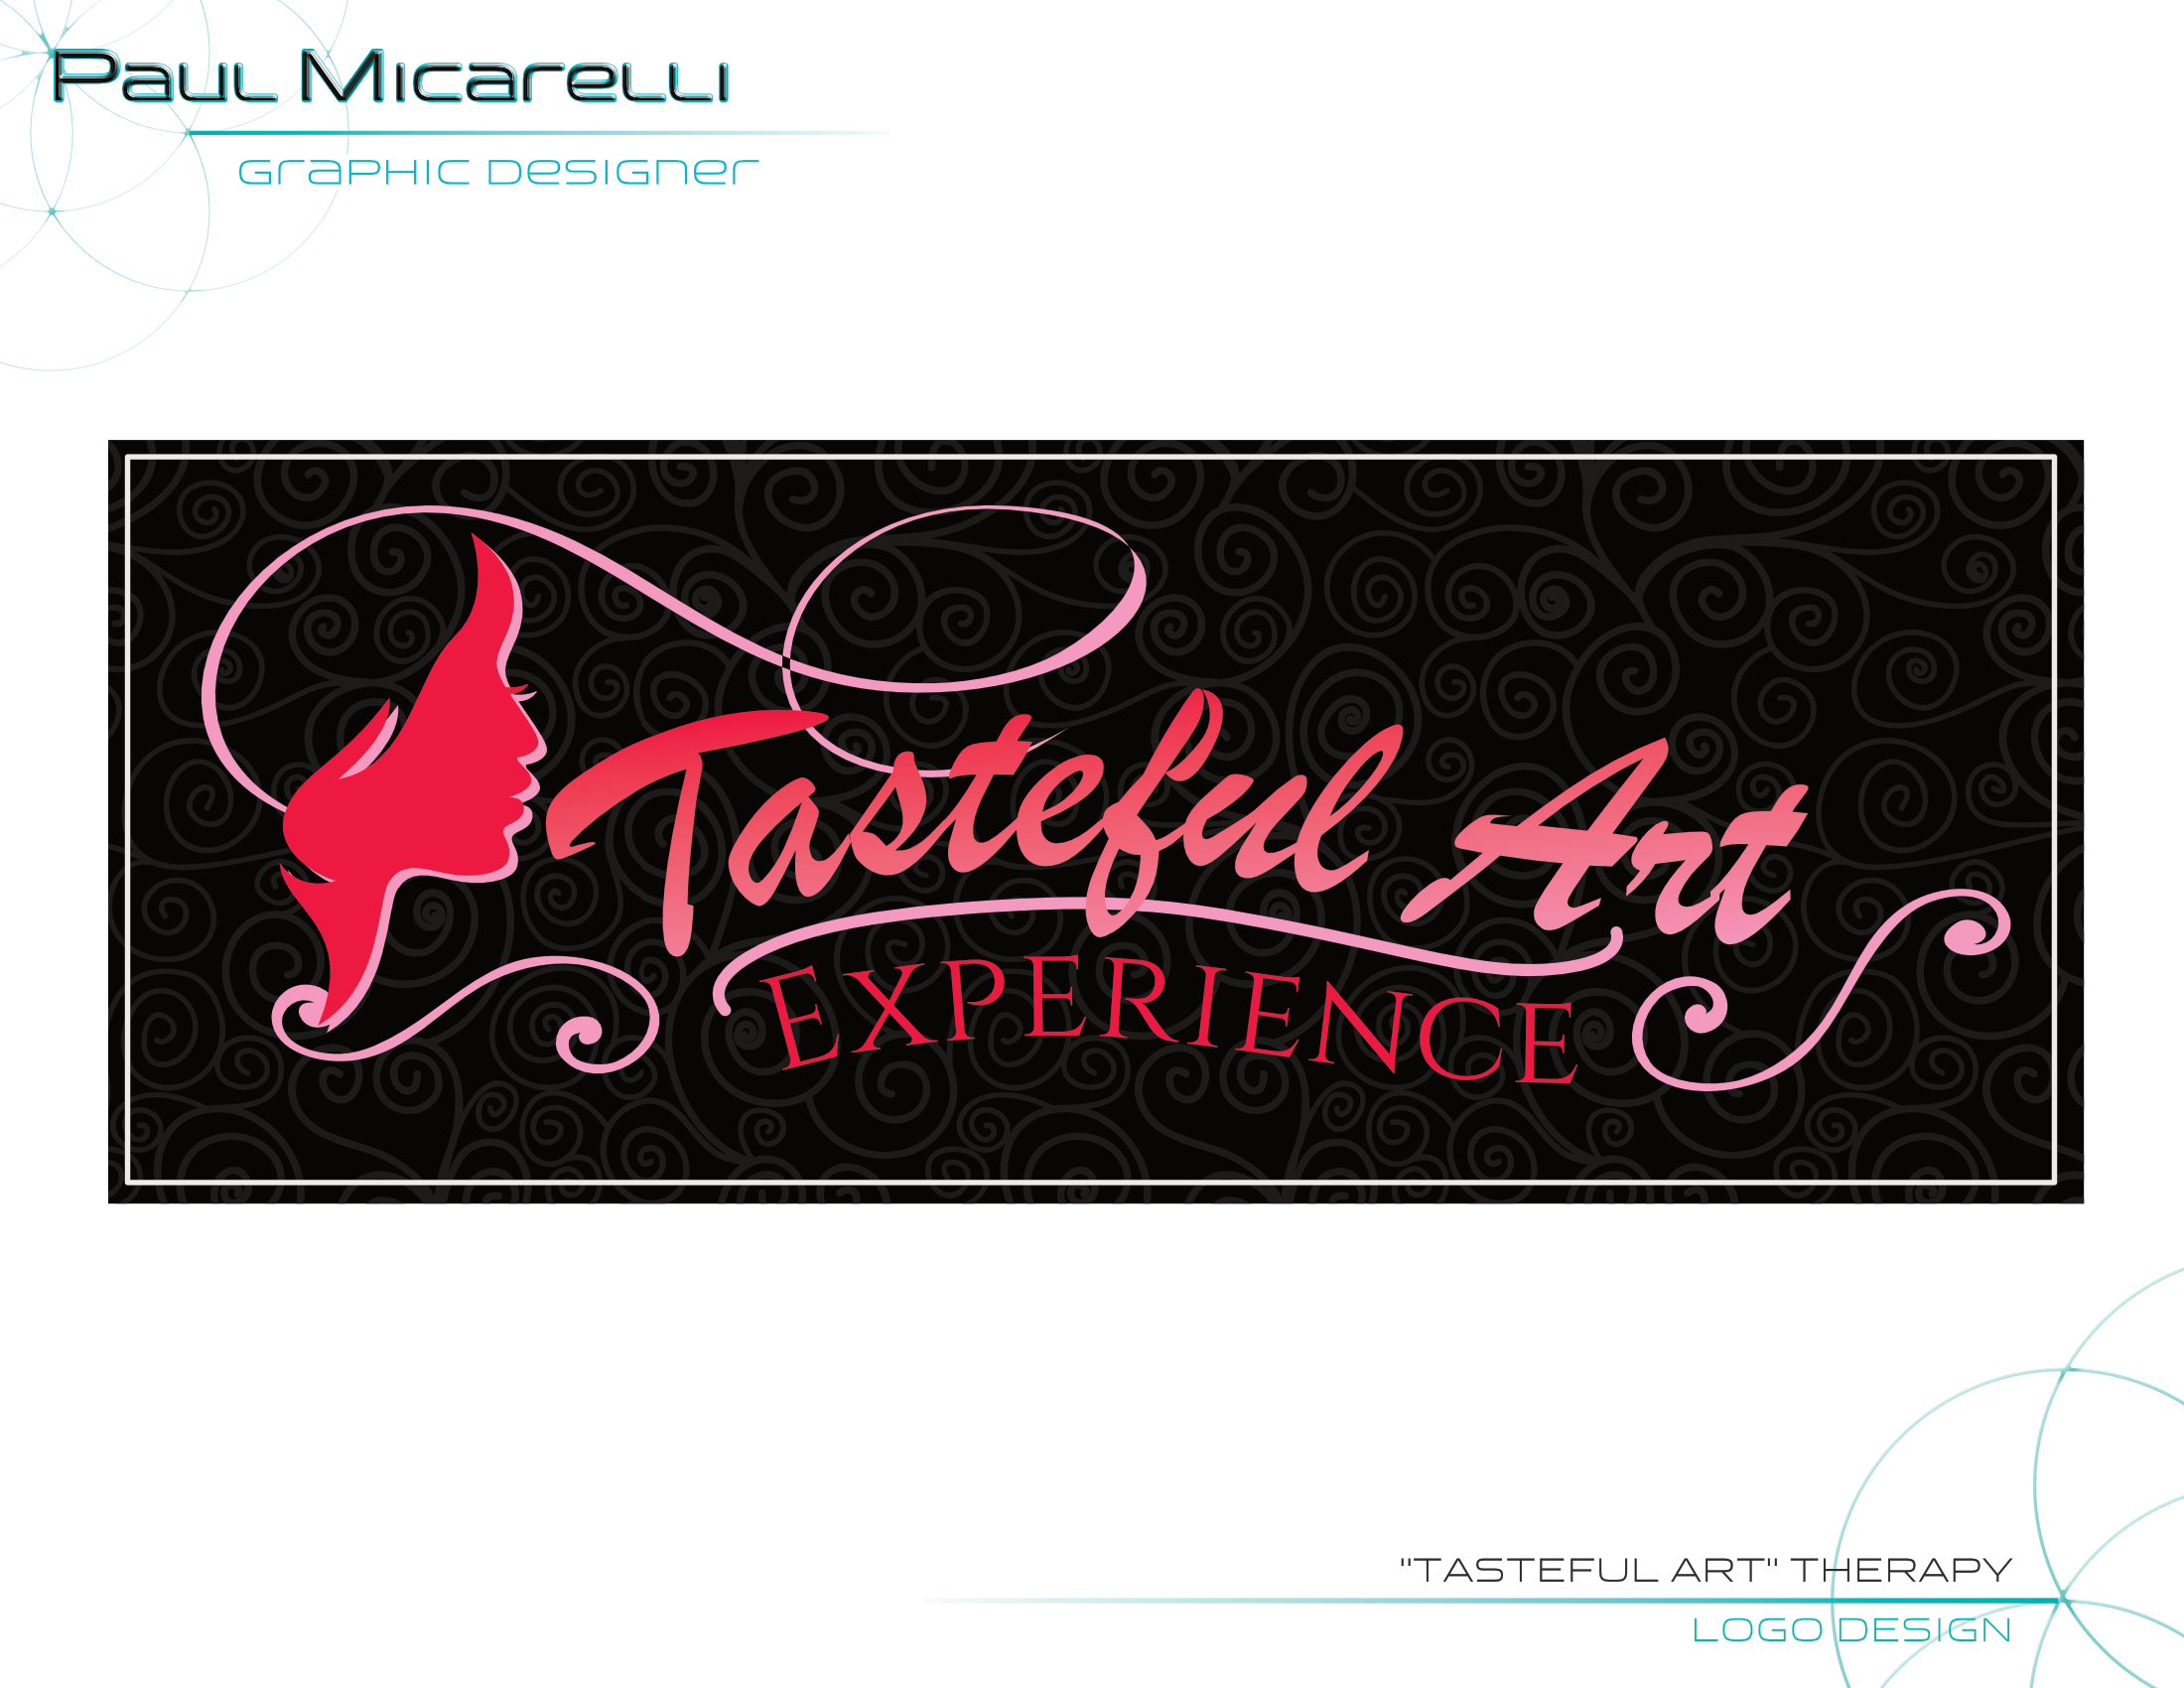 Paul-Micarelli-Tasteful Art Logo